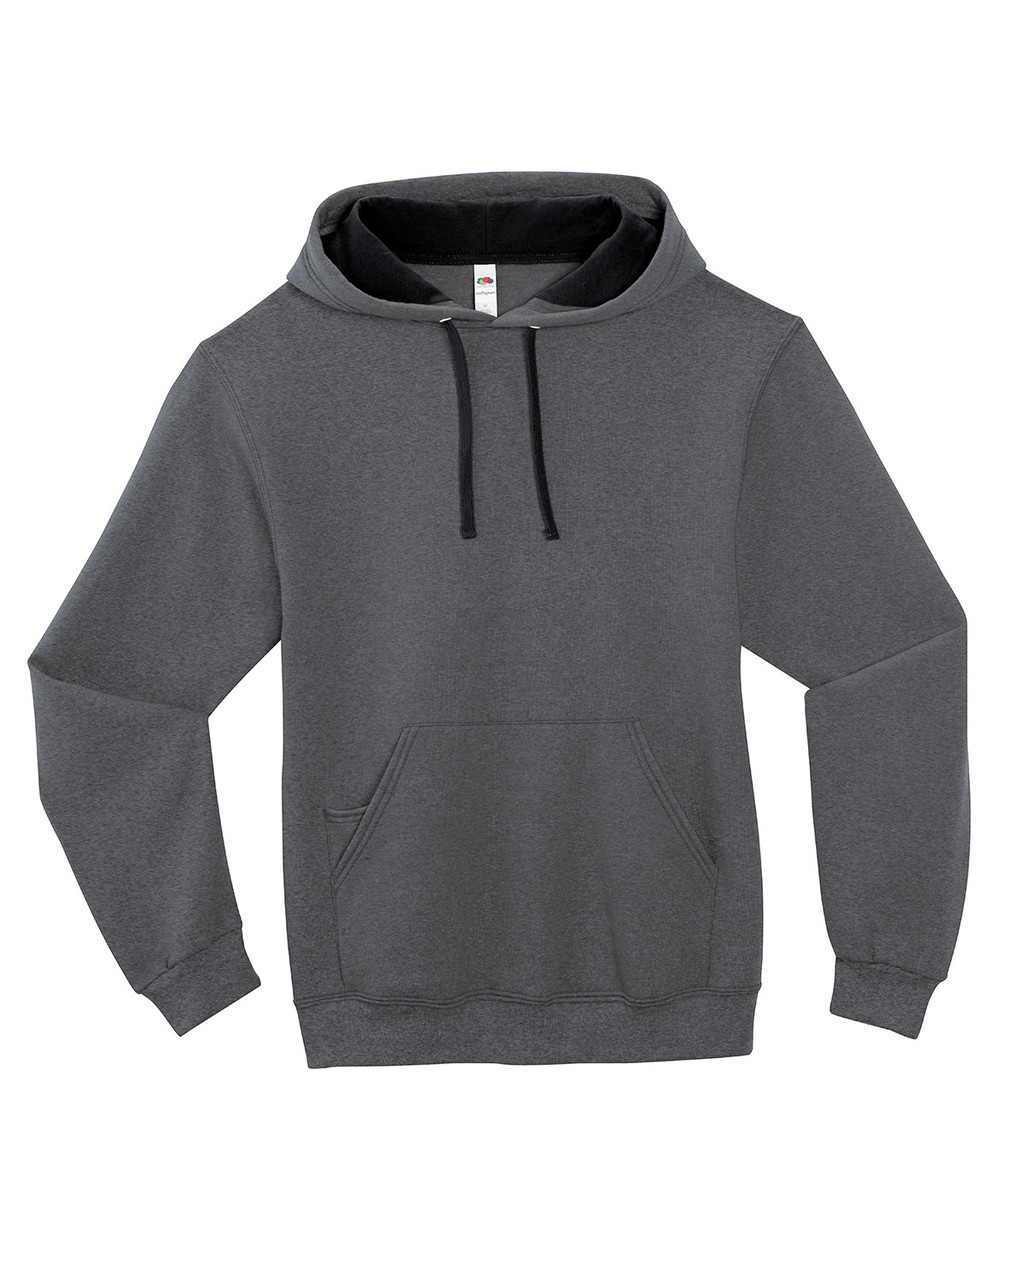 Charcoal Heather SF76R Fruit of the Loom Softspun Hooded Sweatshirt | Blankclothing.ca